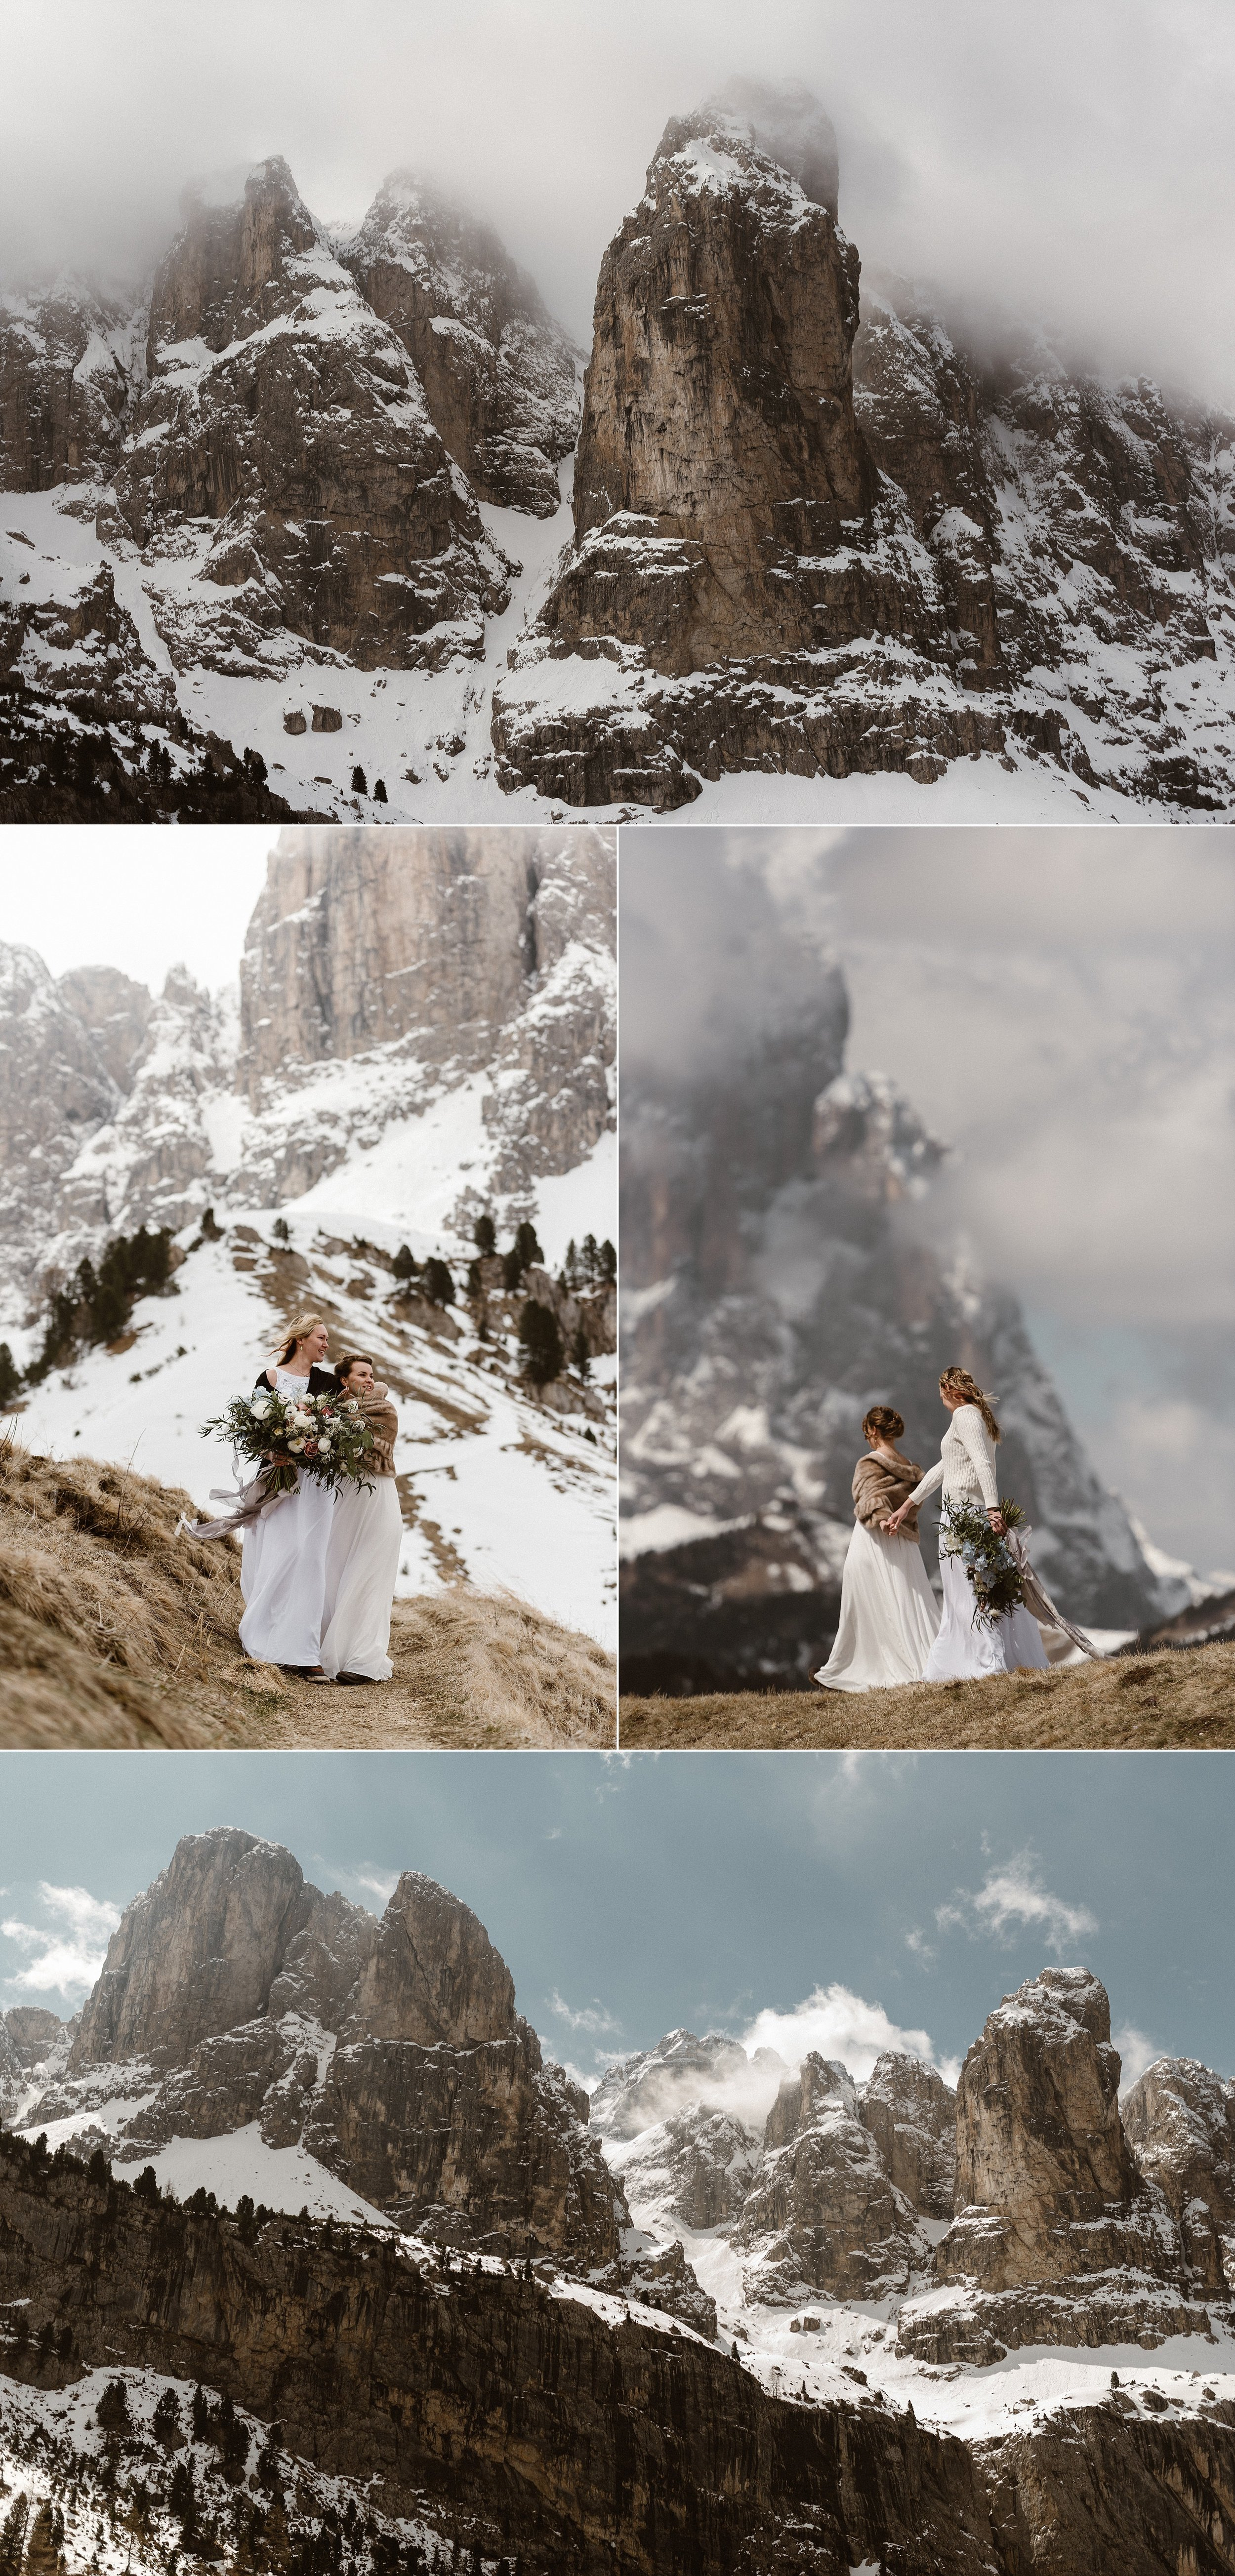 Taking their time to find the perfect intimate ceremony spot amongst the snow with the Dolomites looking down on them they began their hiking adventure for their non-traditional wedding ceremony. Photos by Maddie Mae Photography.